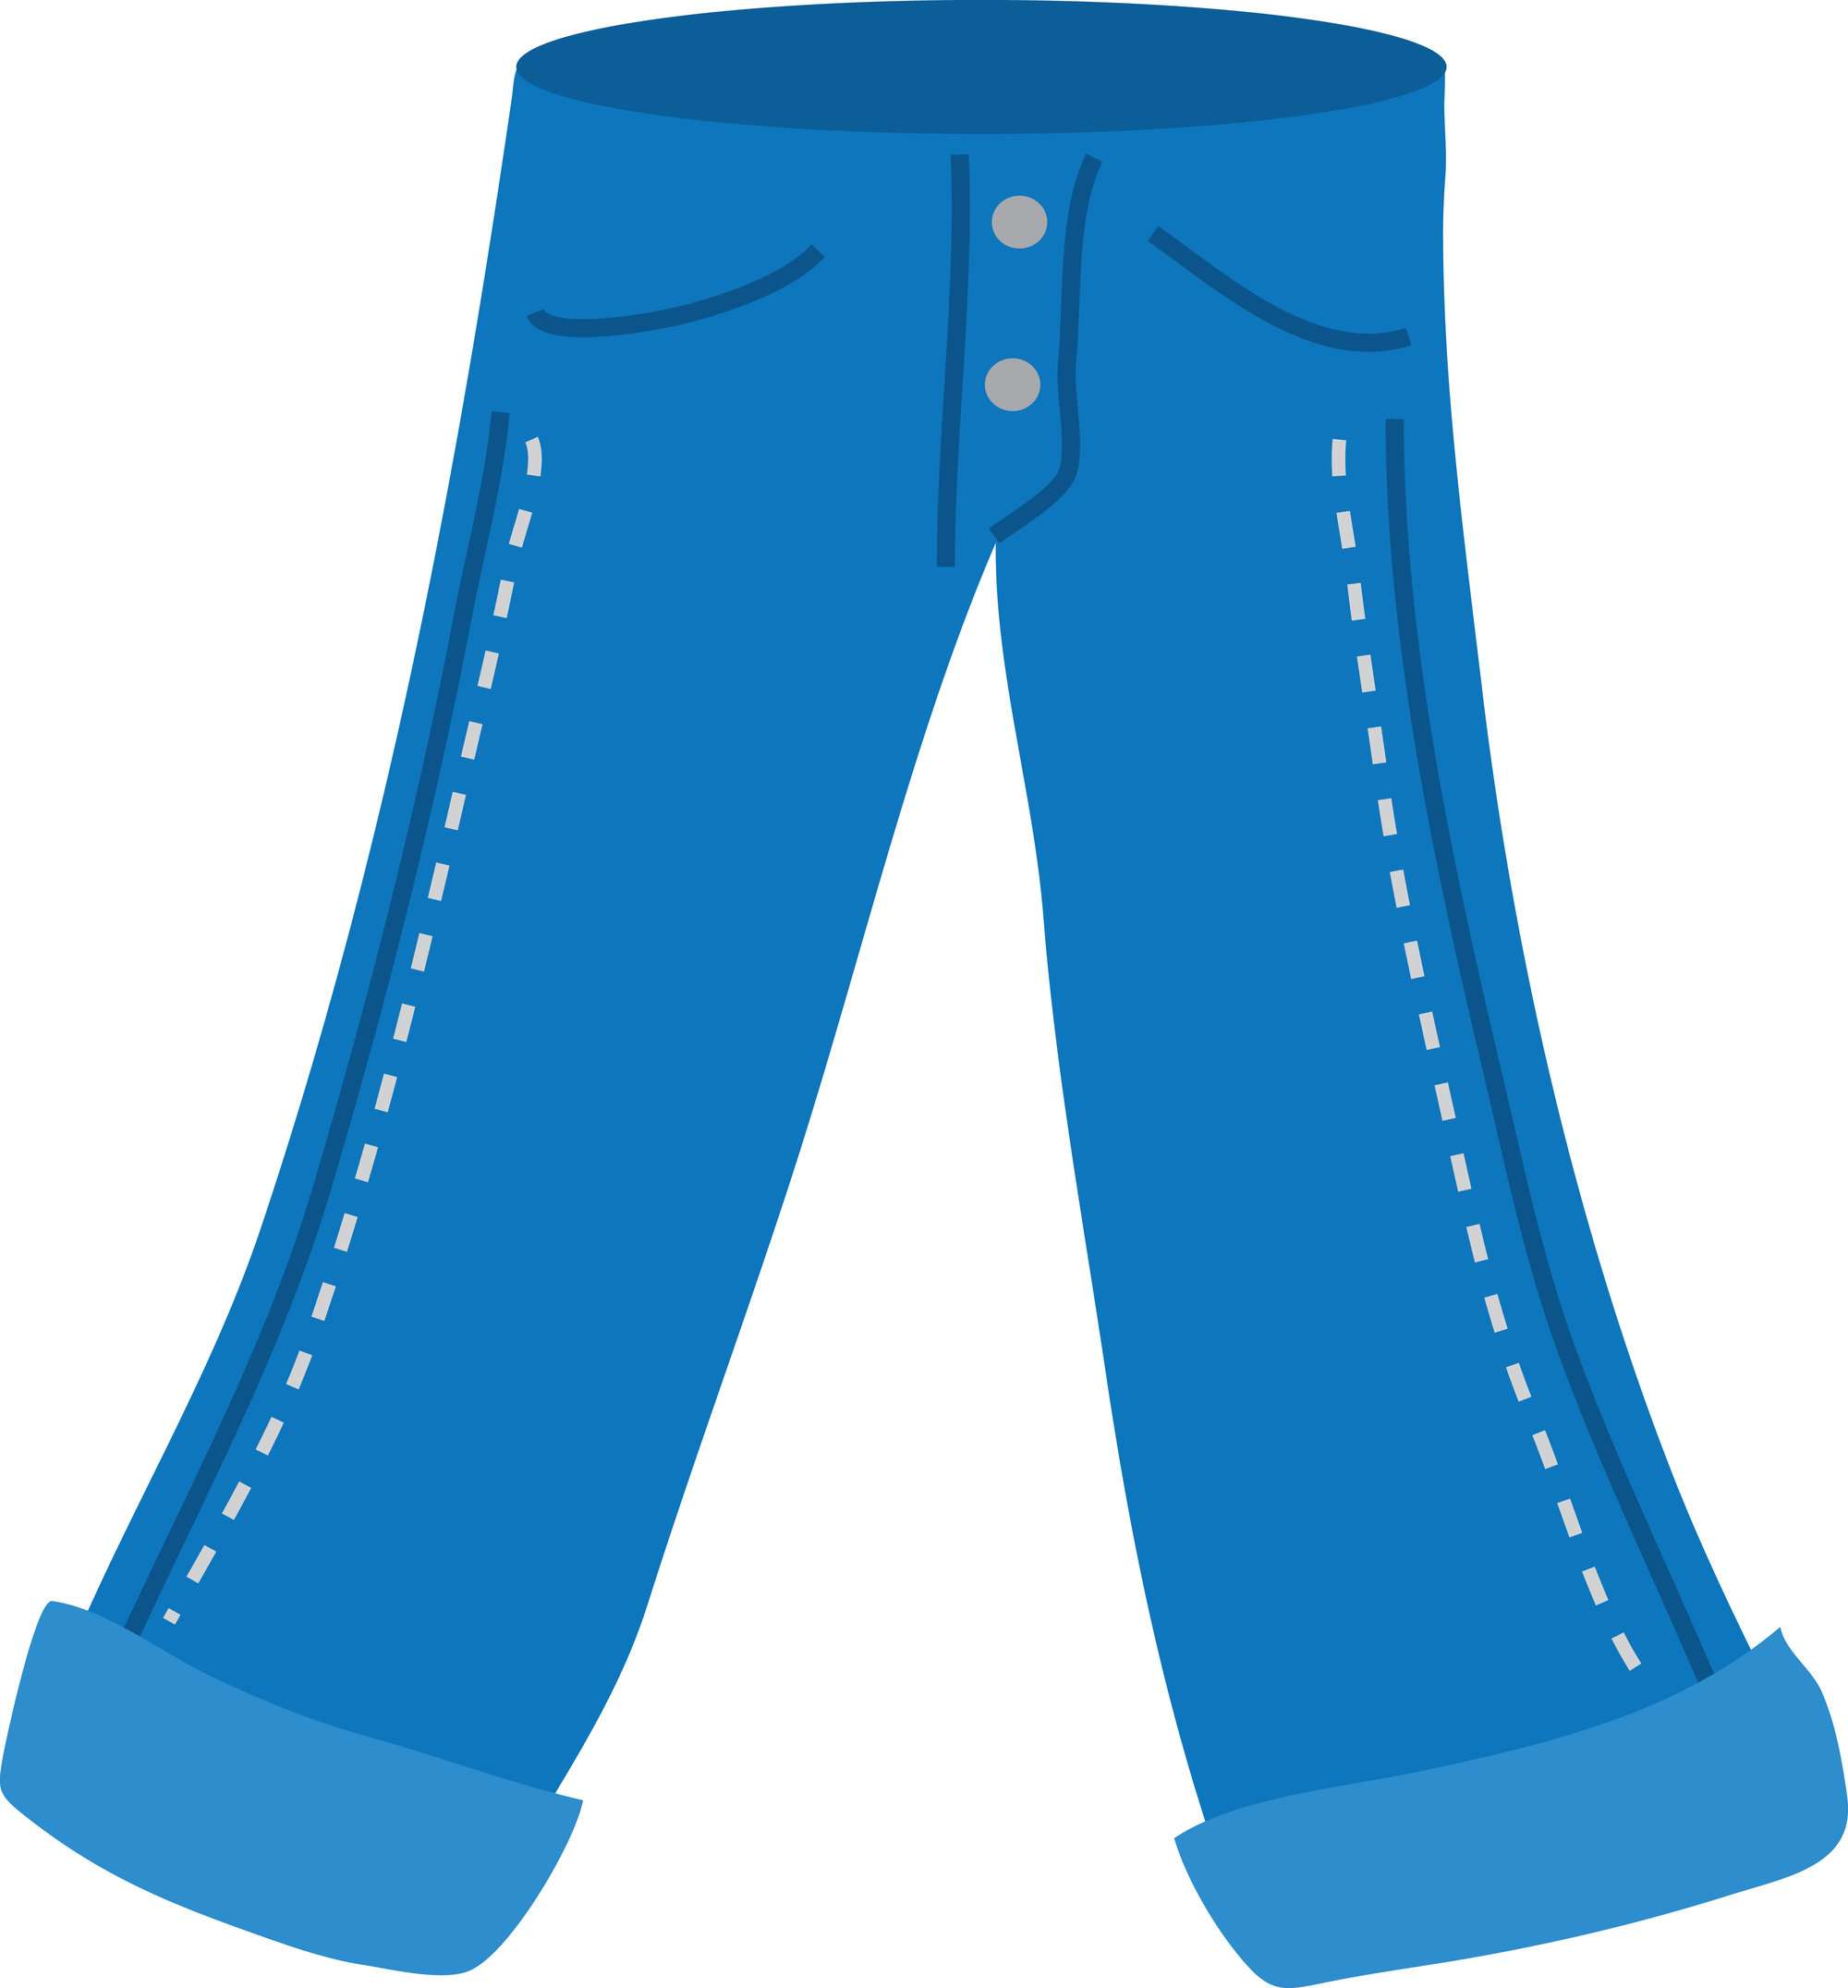 graphic free download Free cliparts download clip. Jeans clipart.